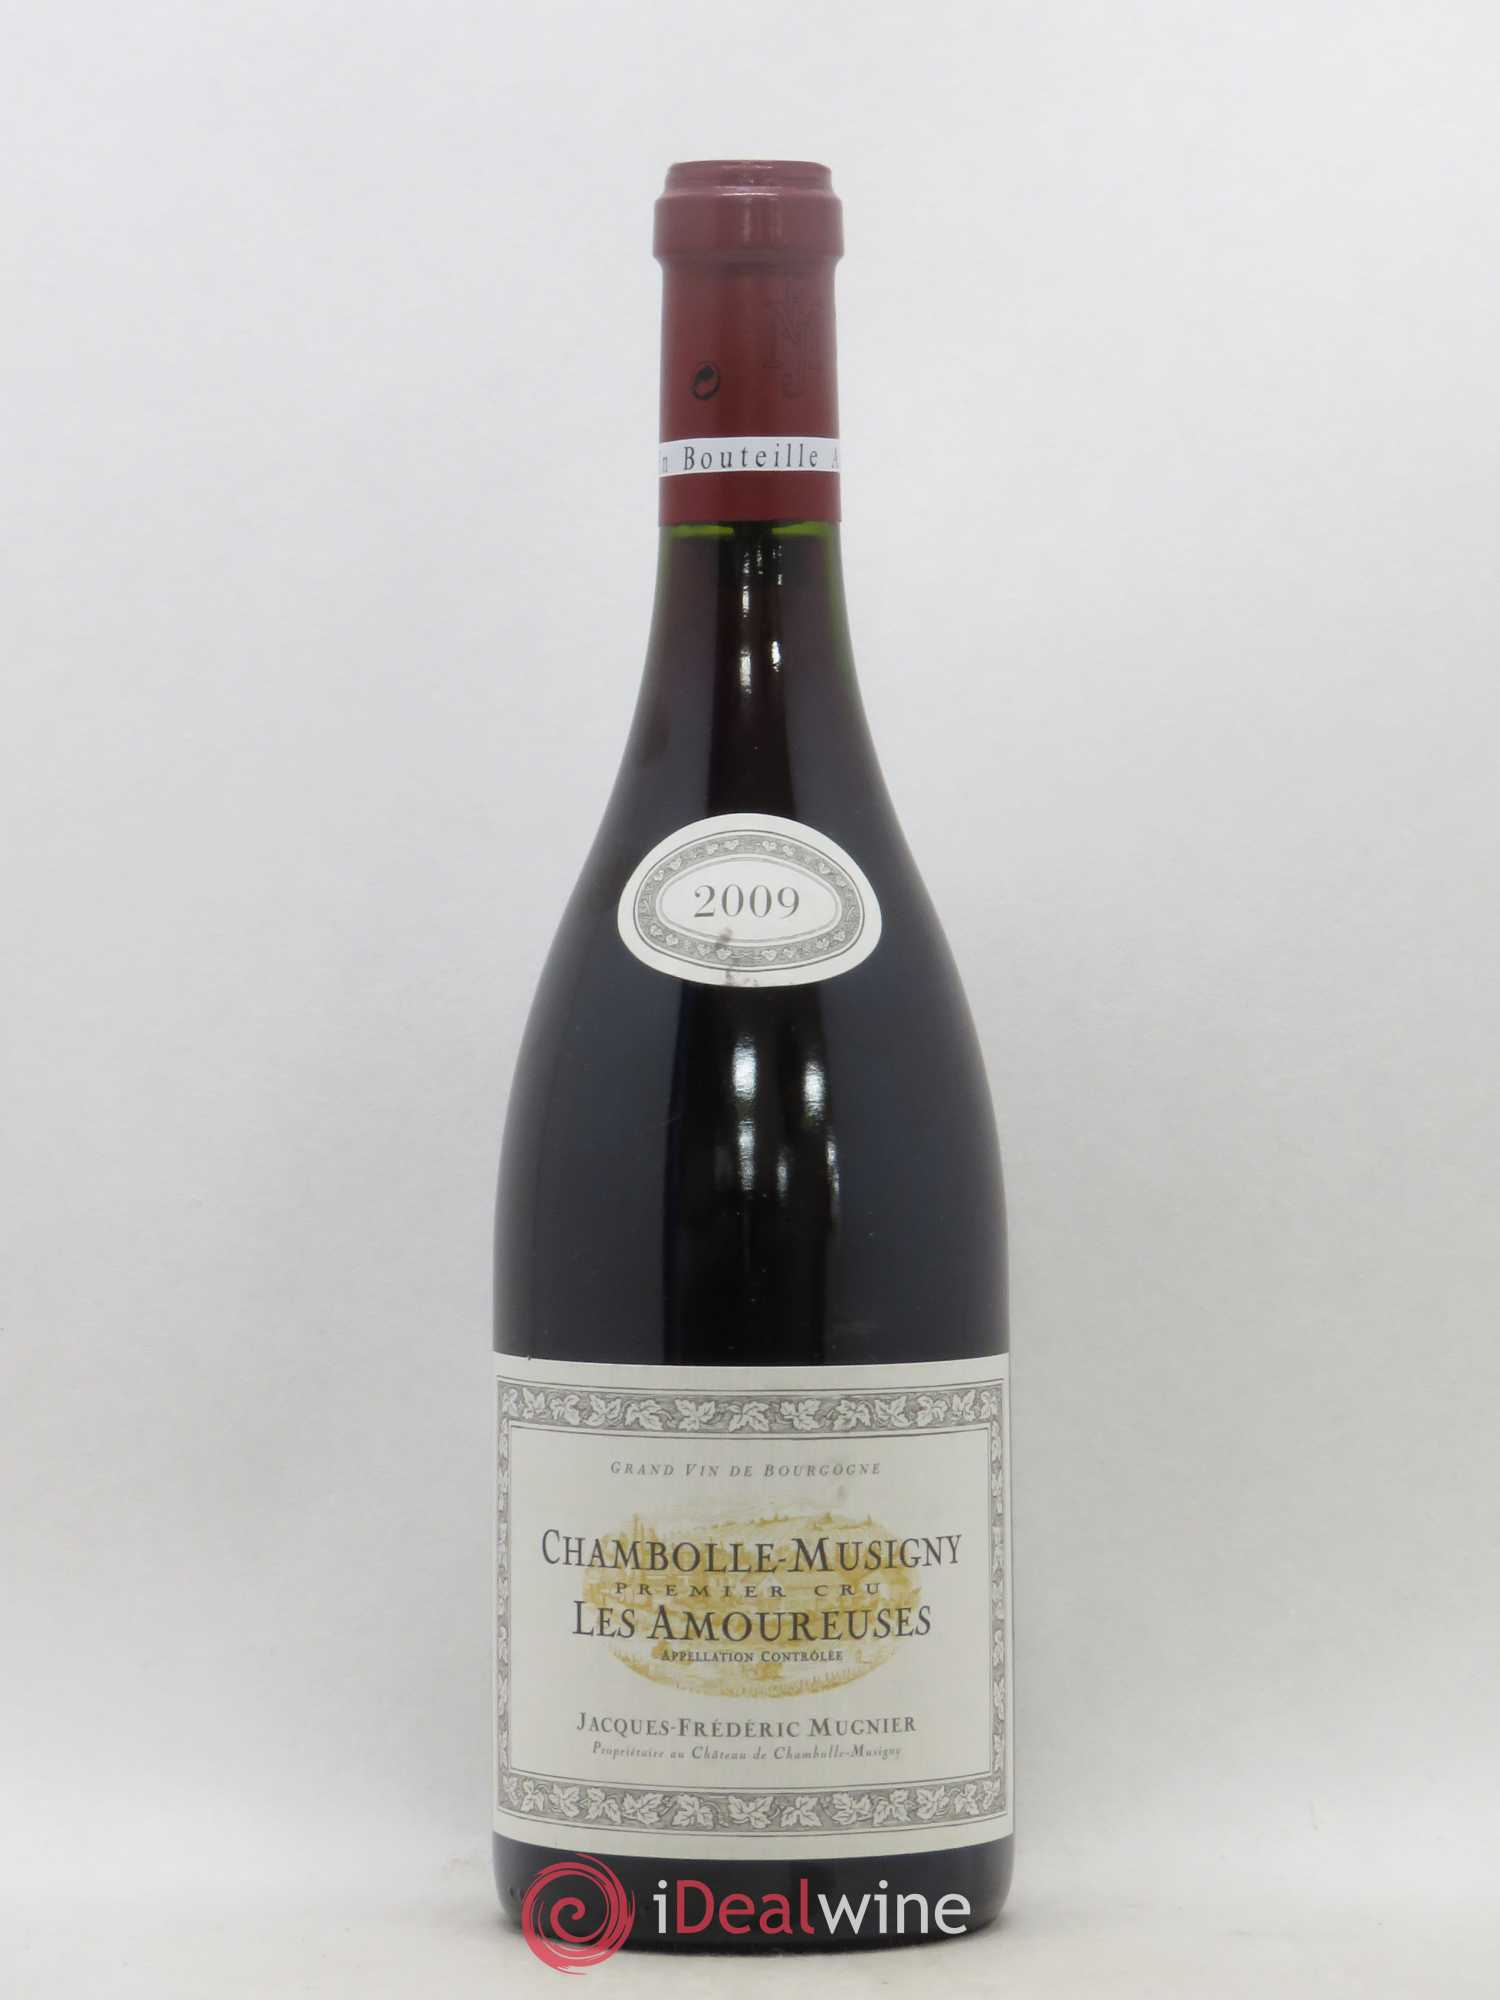 Chambolle-Musigny 1er Cru Les Amoureuses Jacques-Frédéric Mugnier